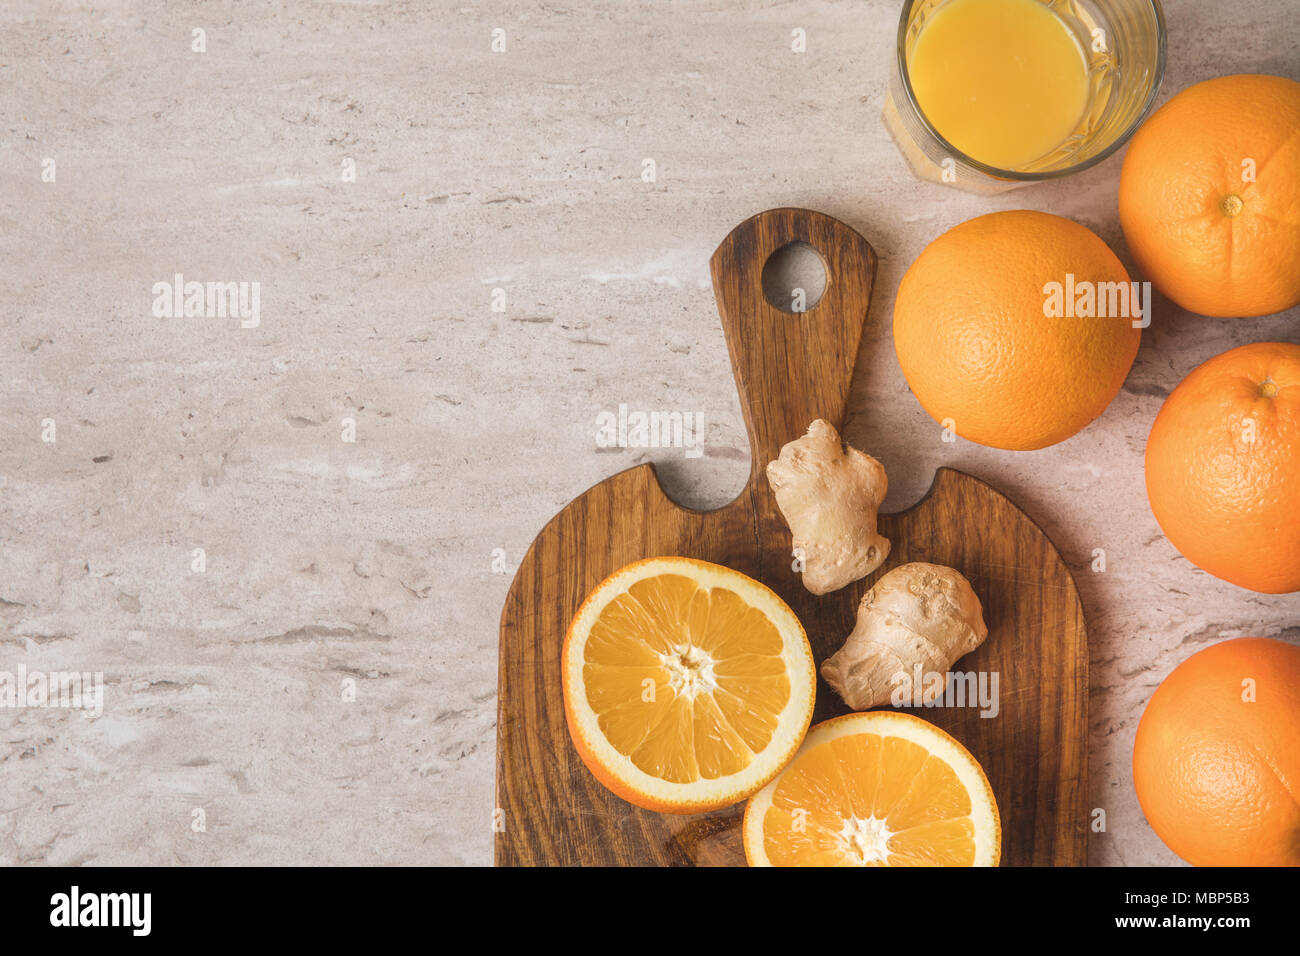 top view of oranges and ginger for homemade juice on table - Stock Image